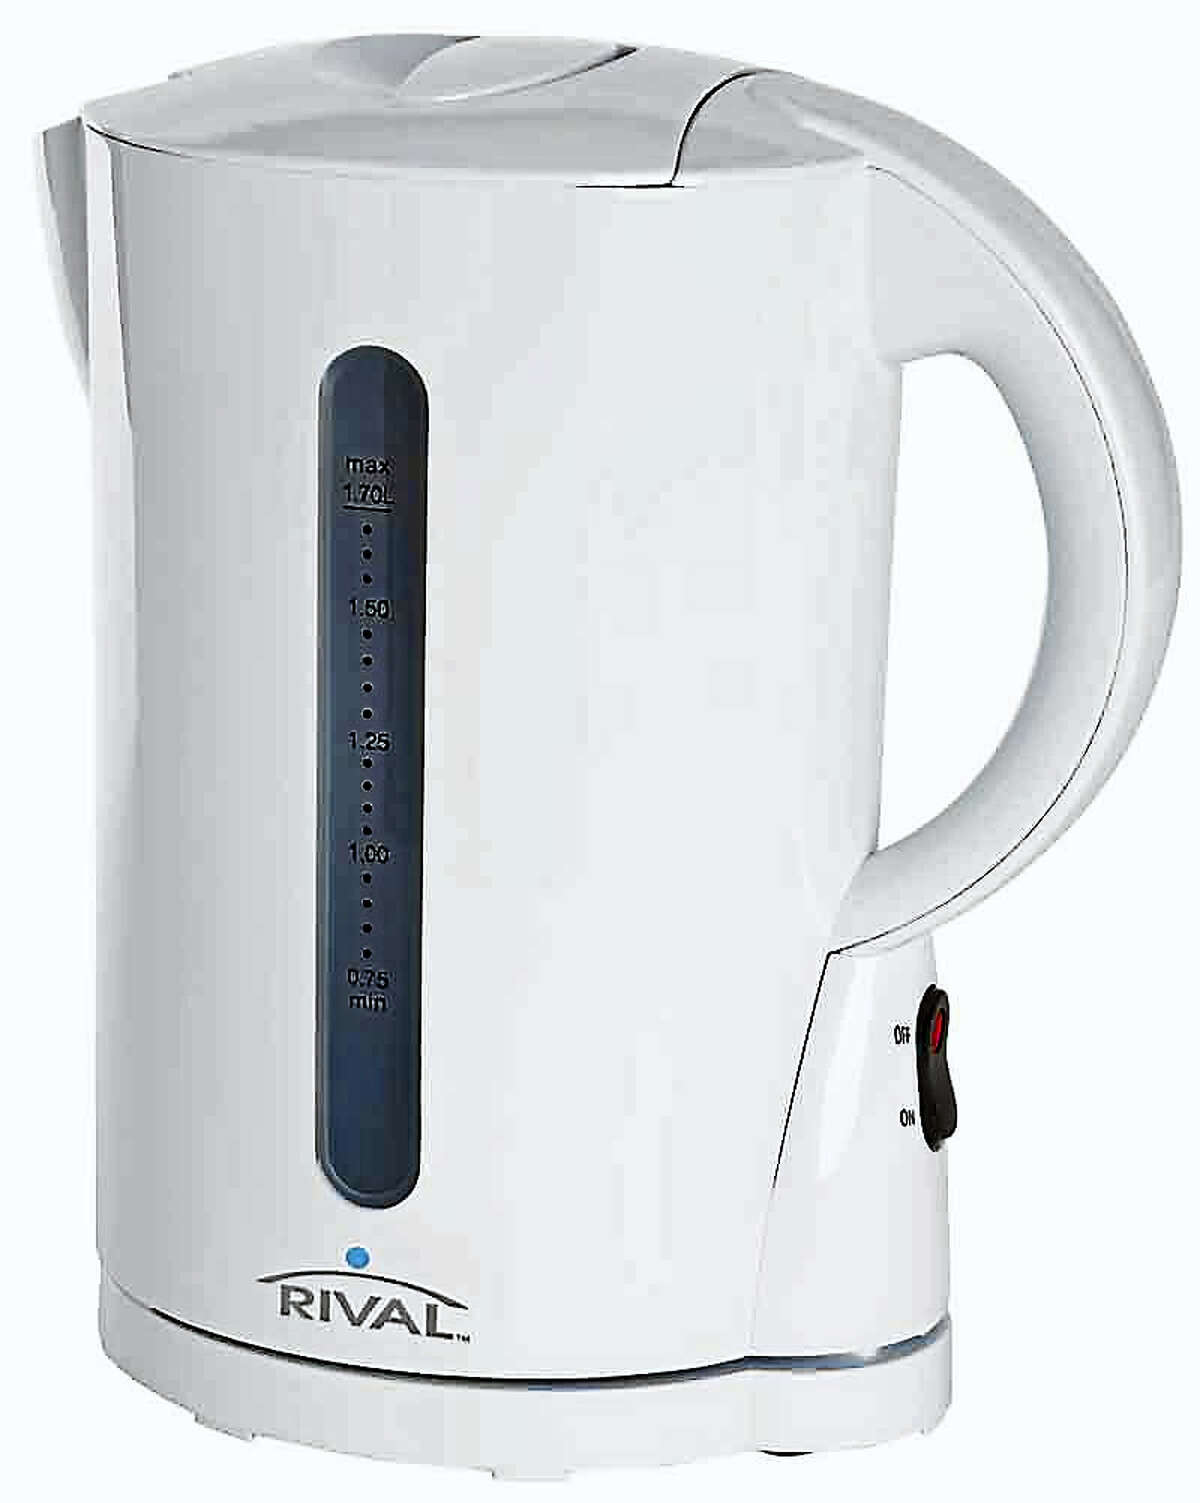 Walmart is recalling some 1.2 million Rival brand electrical kettles after dozens of reports of shock and burn incidents across the U.S.